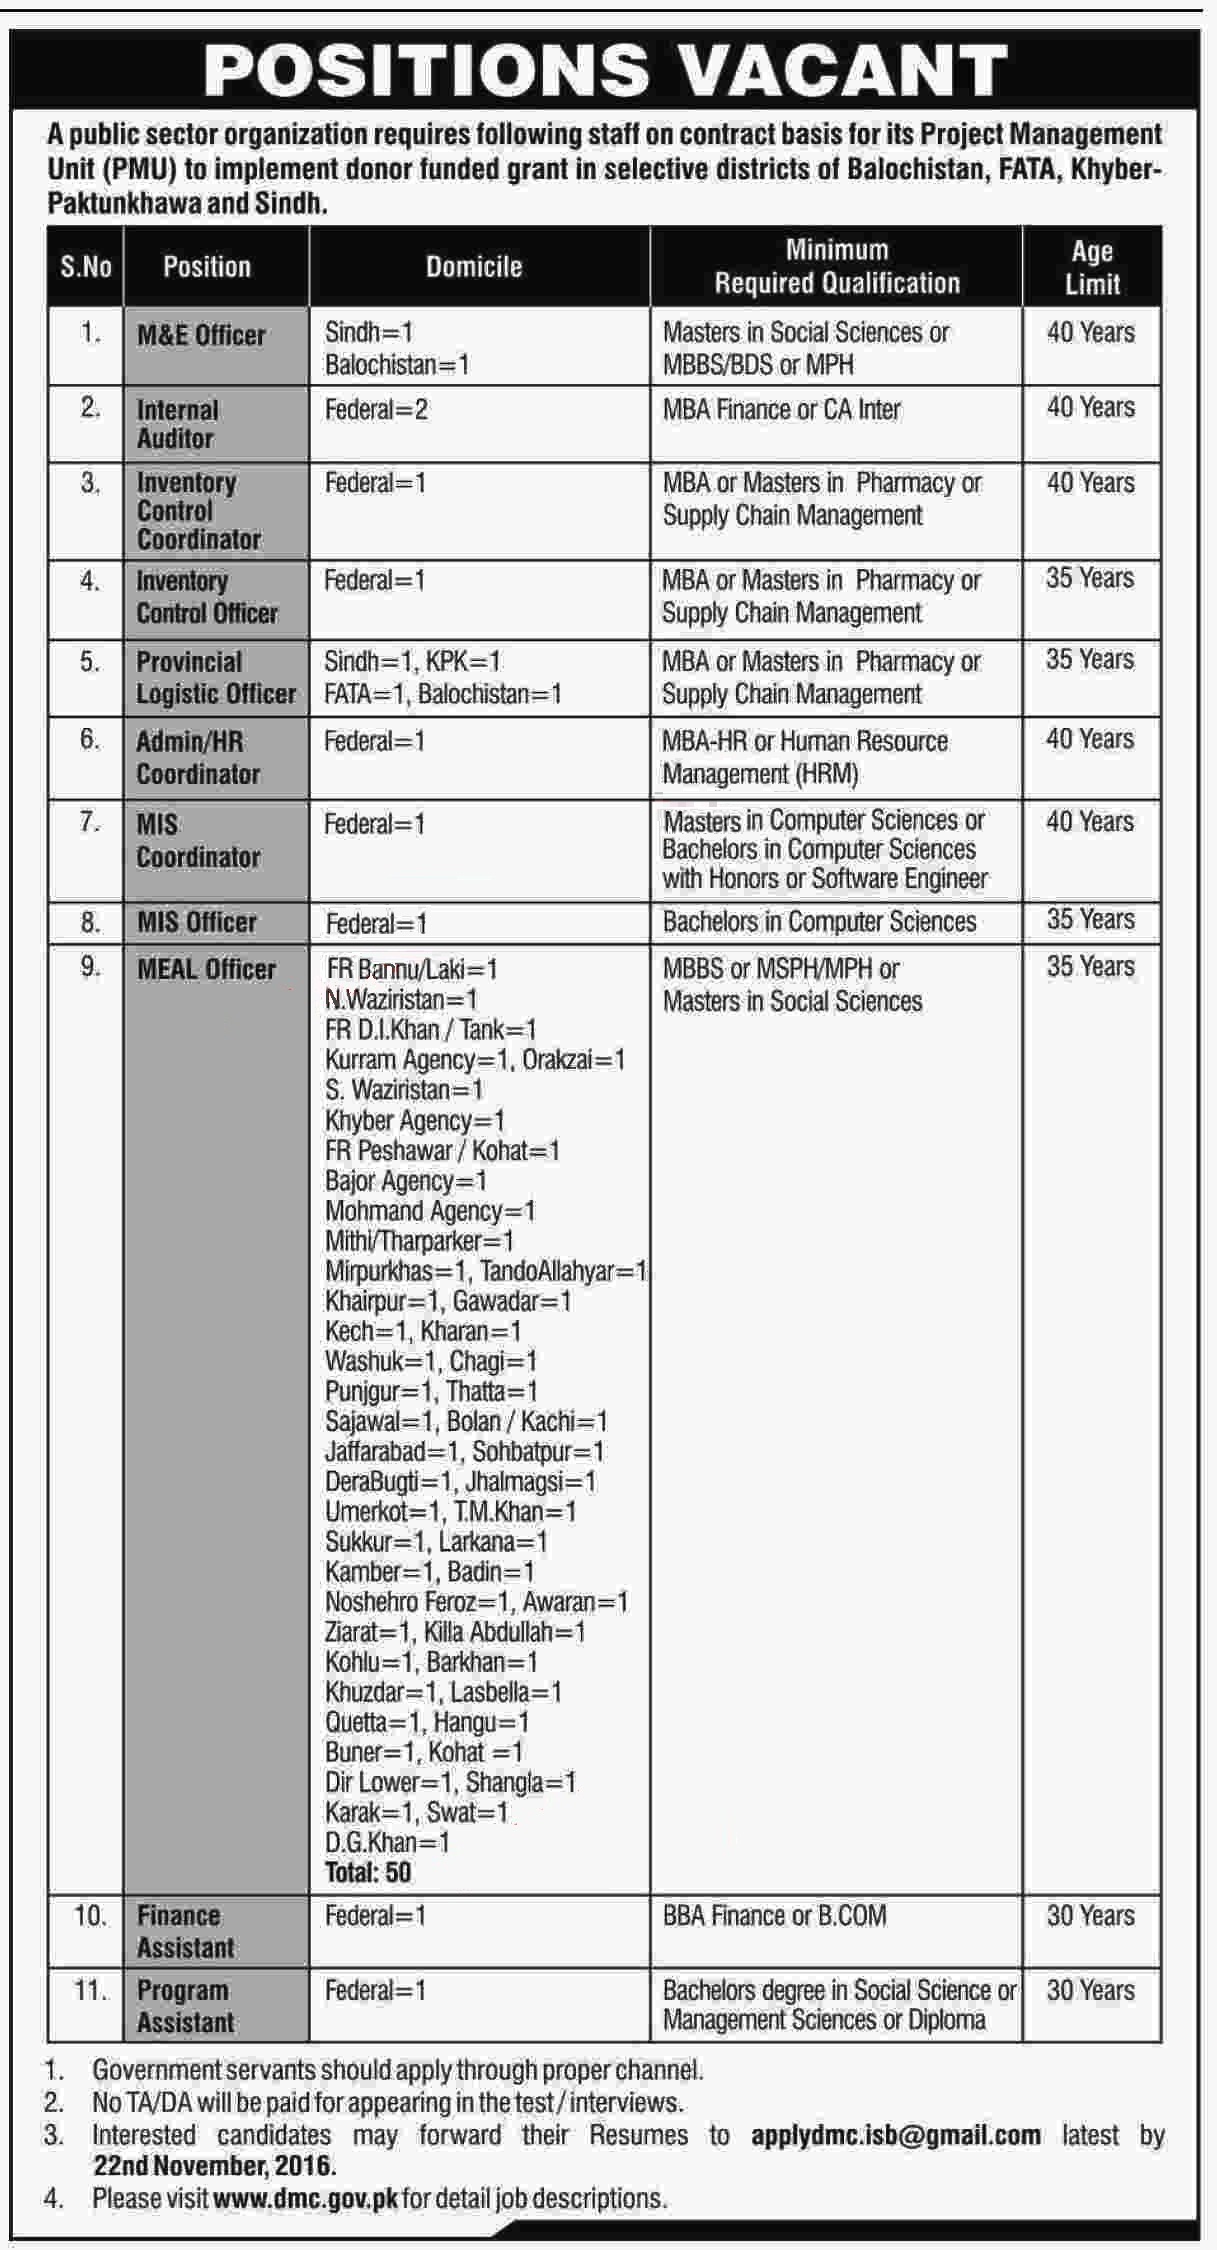 ministry-of-national-health-services-pakistan-jobs-2016-directorate-of-malaria-control-dmc-jobs-latest-vacancies-advertisement